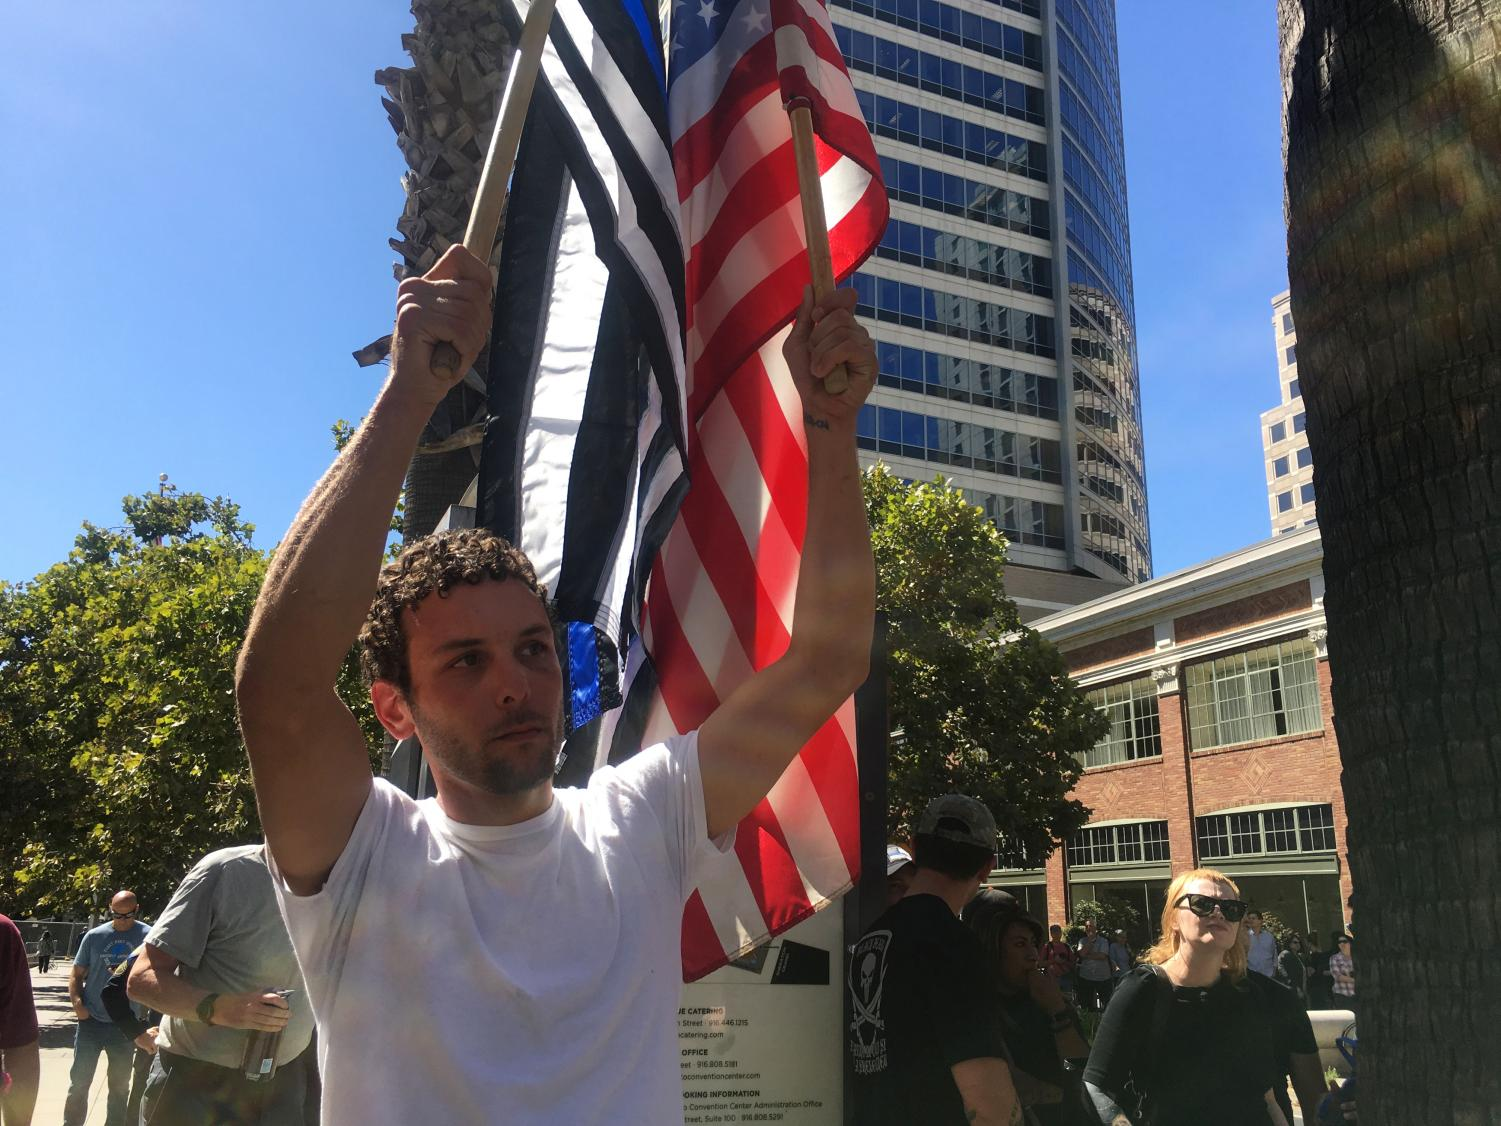 Sacramento+resident+Matthew+Long+waives+an+American+flag+and+Blue+Lives+Matter+flag+during+the+Cop+Expo+Shut+Down+at+the+Sacramento+Convention+Center+Tuesday%2C+Sept.+18.+Long+said+he+was+there+in+honor+of+friend+Sacramento+County+Sheriff%27s+Deputy+Mark+Stasyuk+who+was+shot+and+killed+Monday%2C+Sept.+17+while+on+duty.+